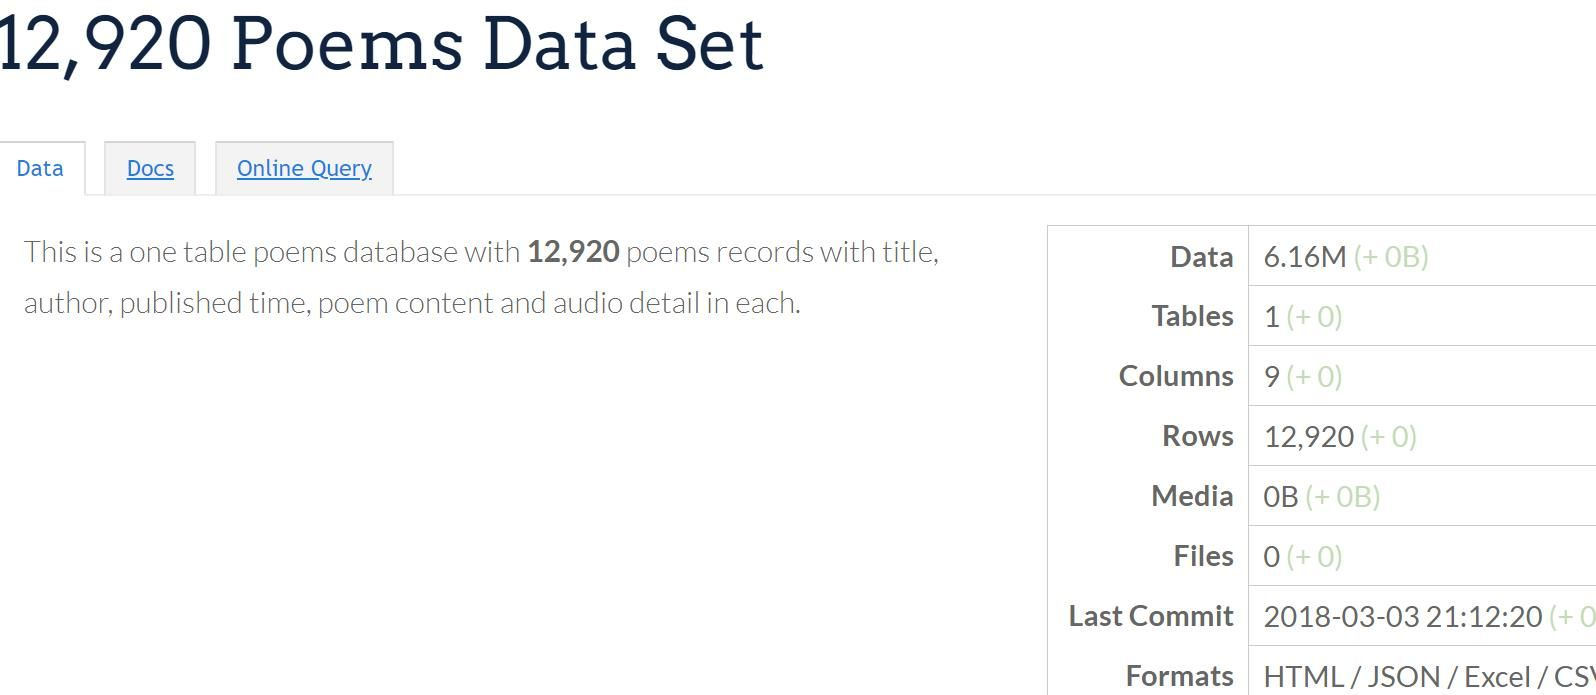 12,920 Poems Database https//datasn.io/p/857 This is a